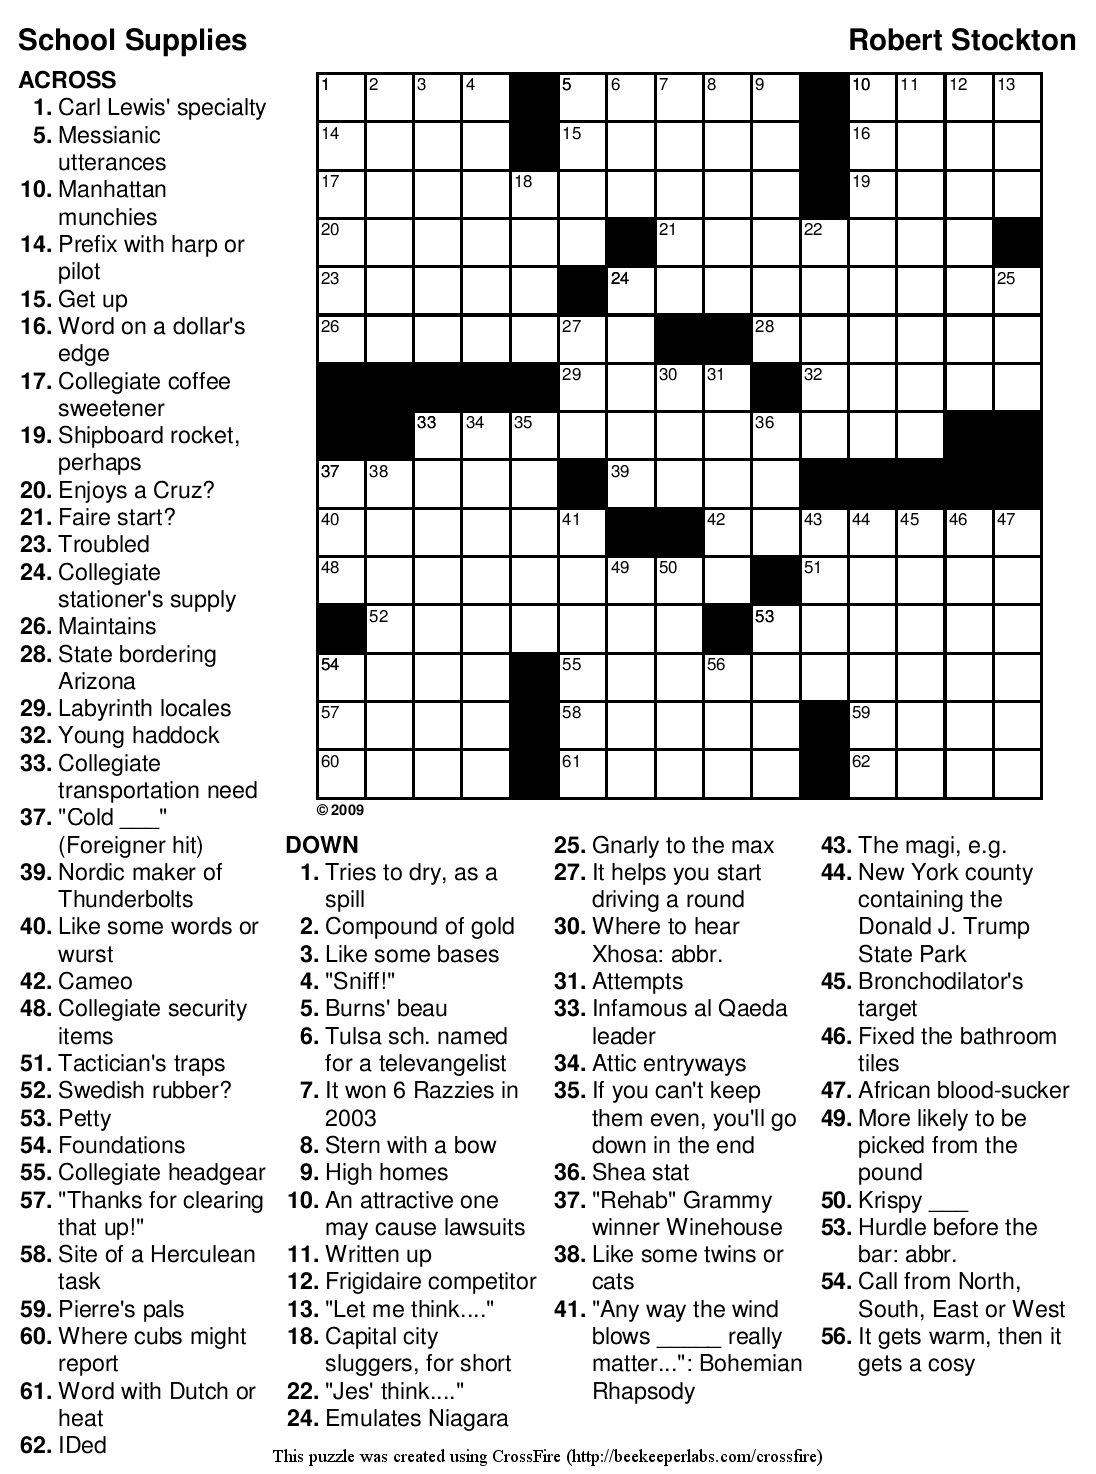 Easy Printable Crossword Puzzles | Crosswords Puzzles | Printable - Printable Crossword Puzzle Book Pdf